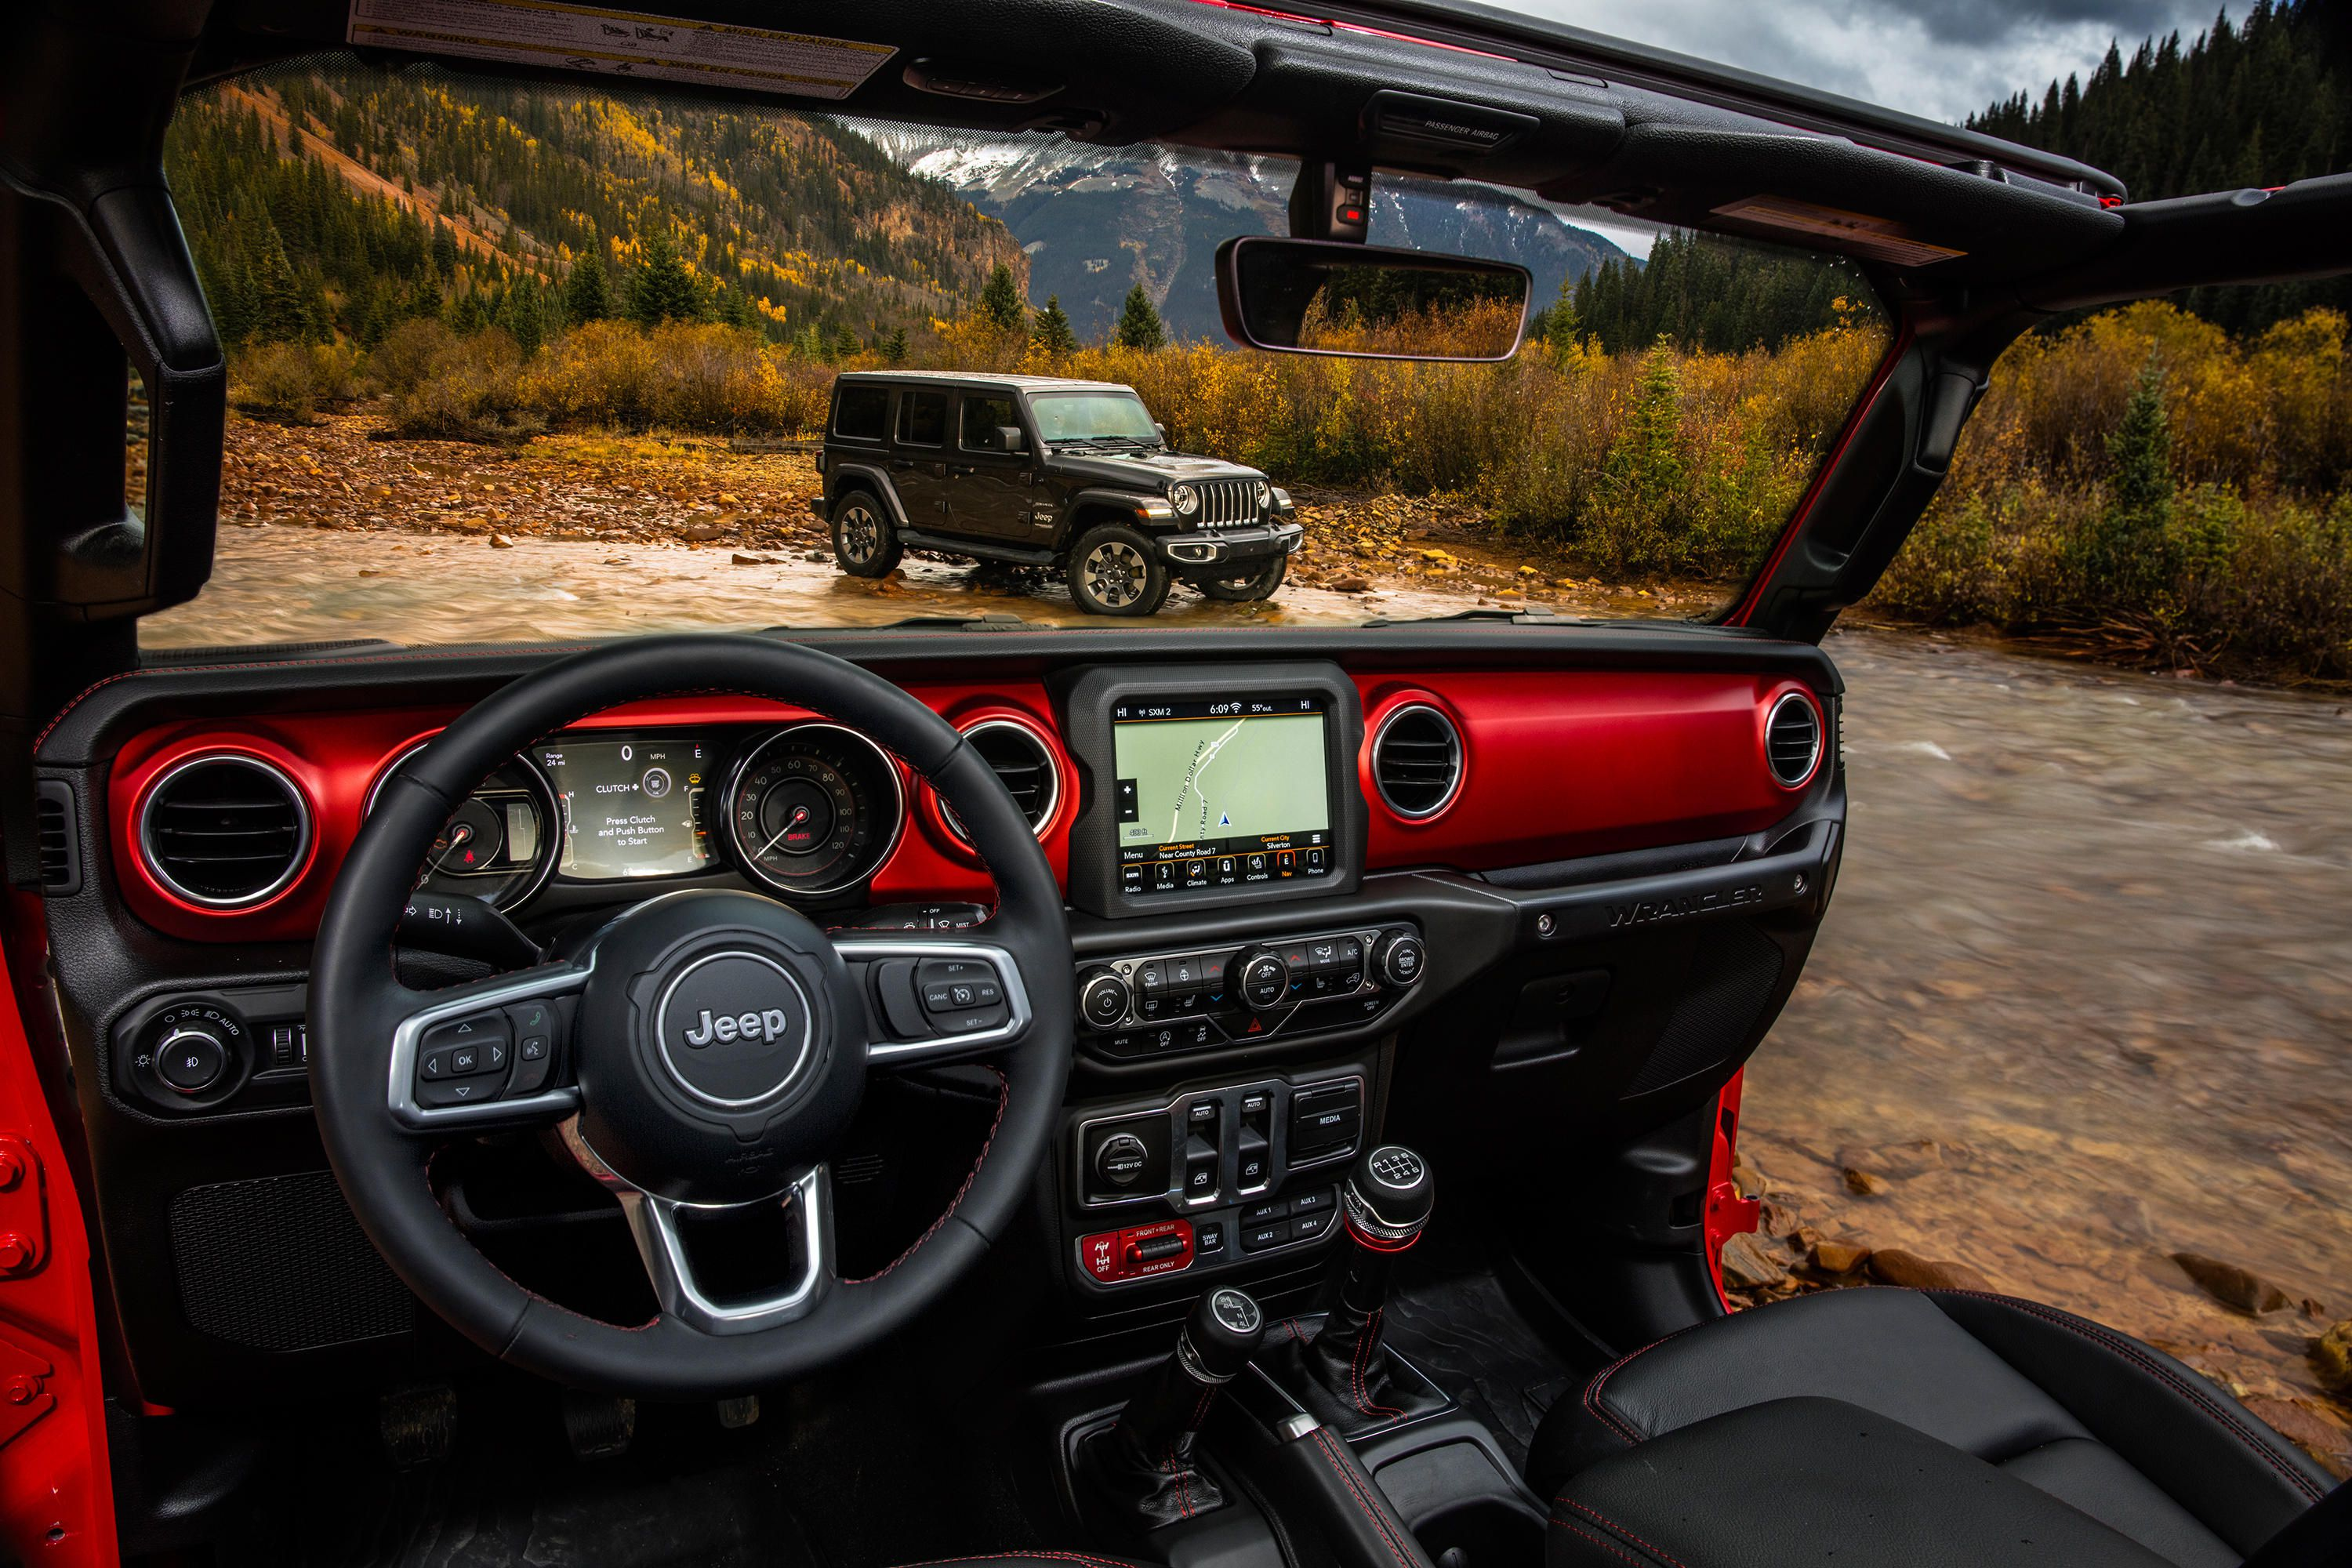 jeep wrangler 2018 uconnect infotainment. Black Bedroom Furniture Sets. Home Design Ideas